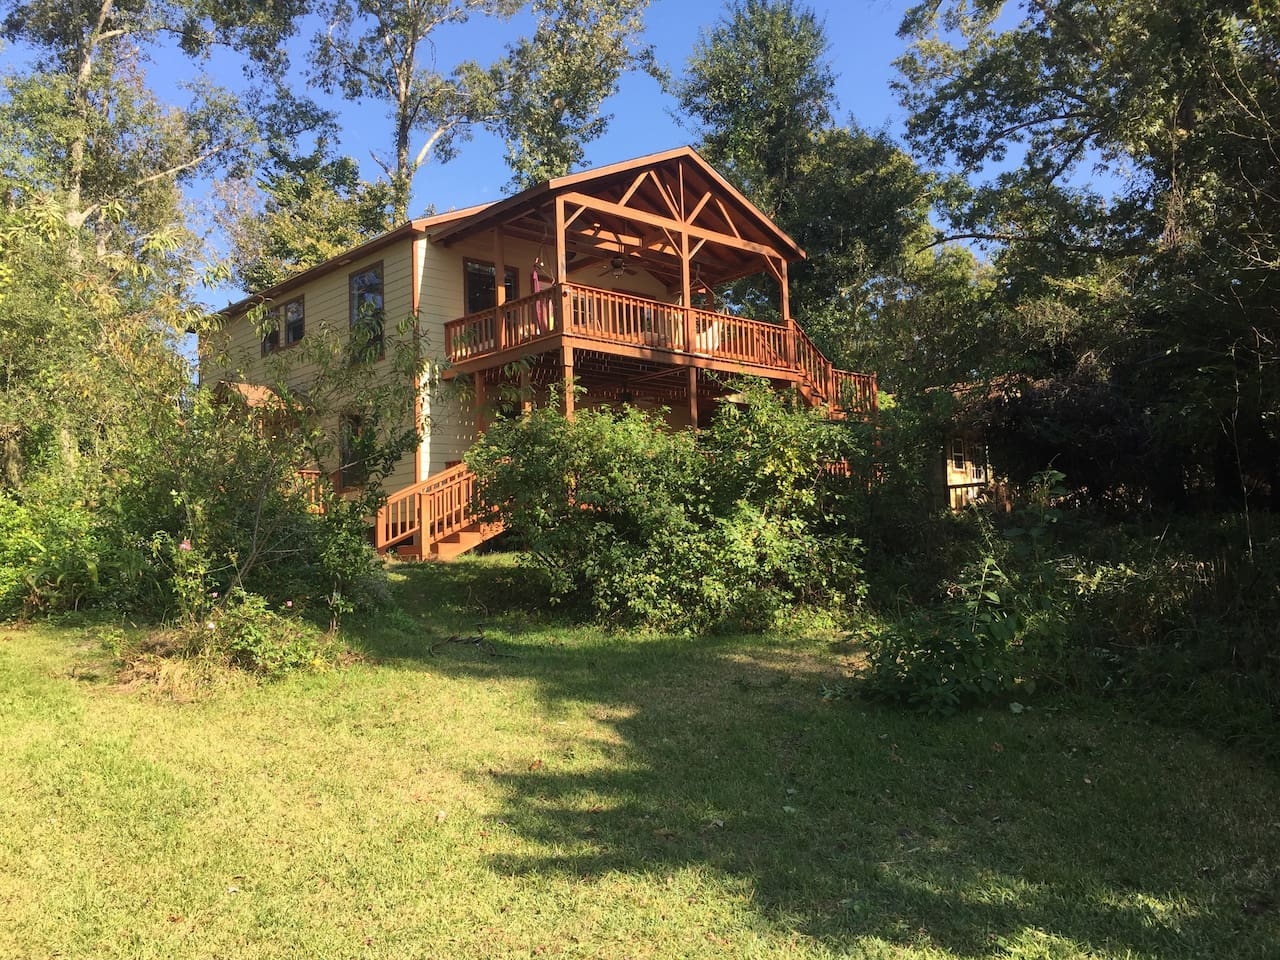 View of new house and decks from the river